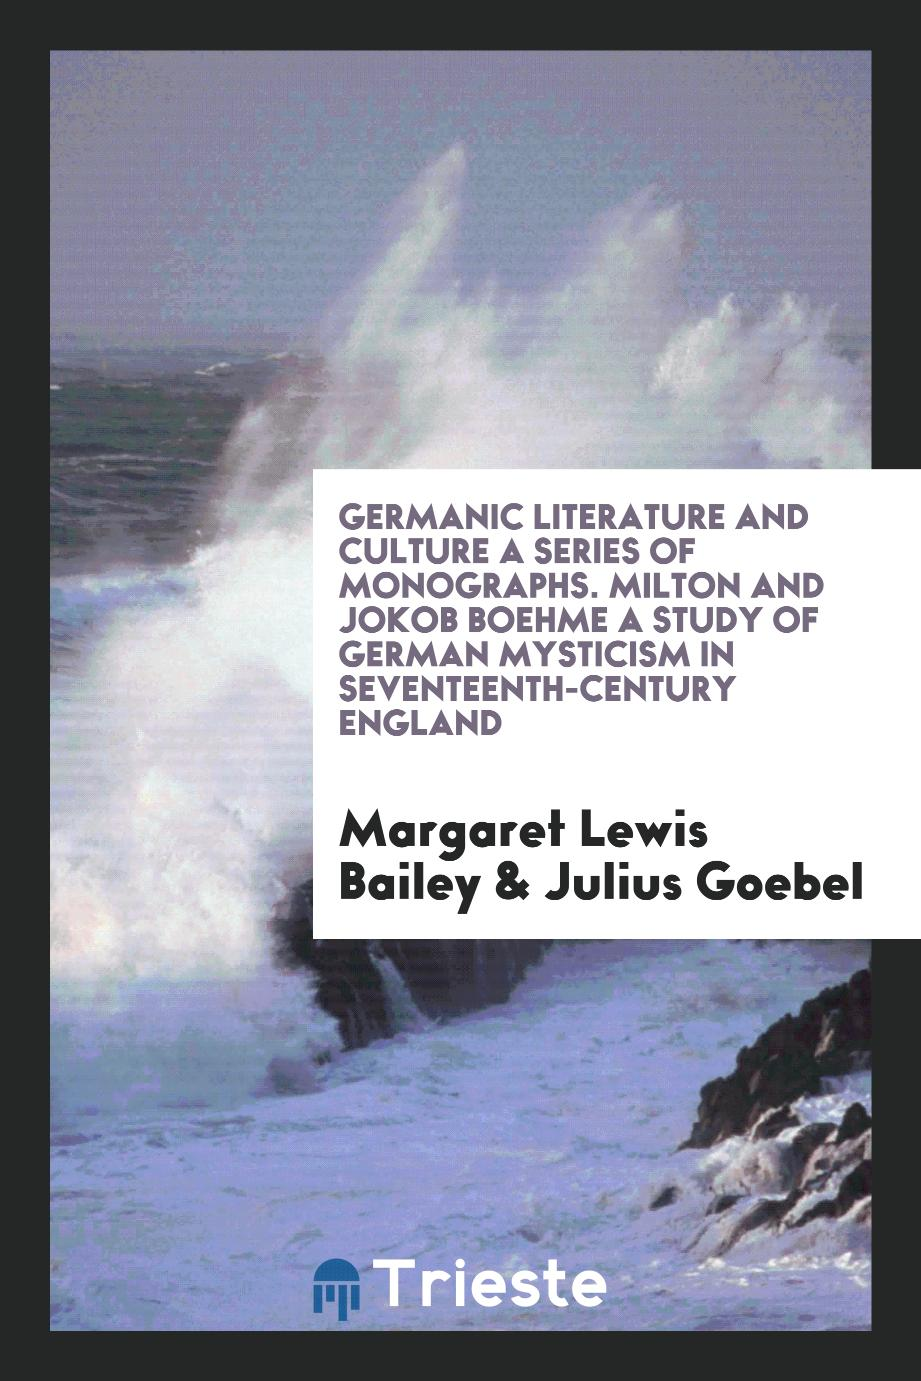 Germanic Literature and Culture a Series of Monographs. Milton and Jokob Boehme a Study of German Mysticism in Seventeenth-Century England